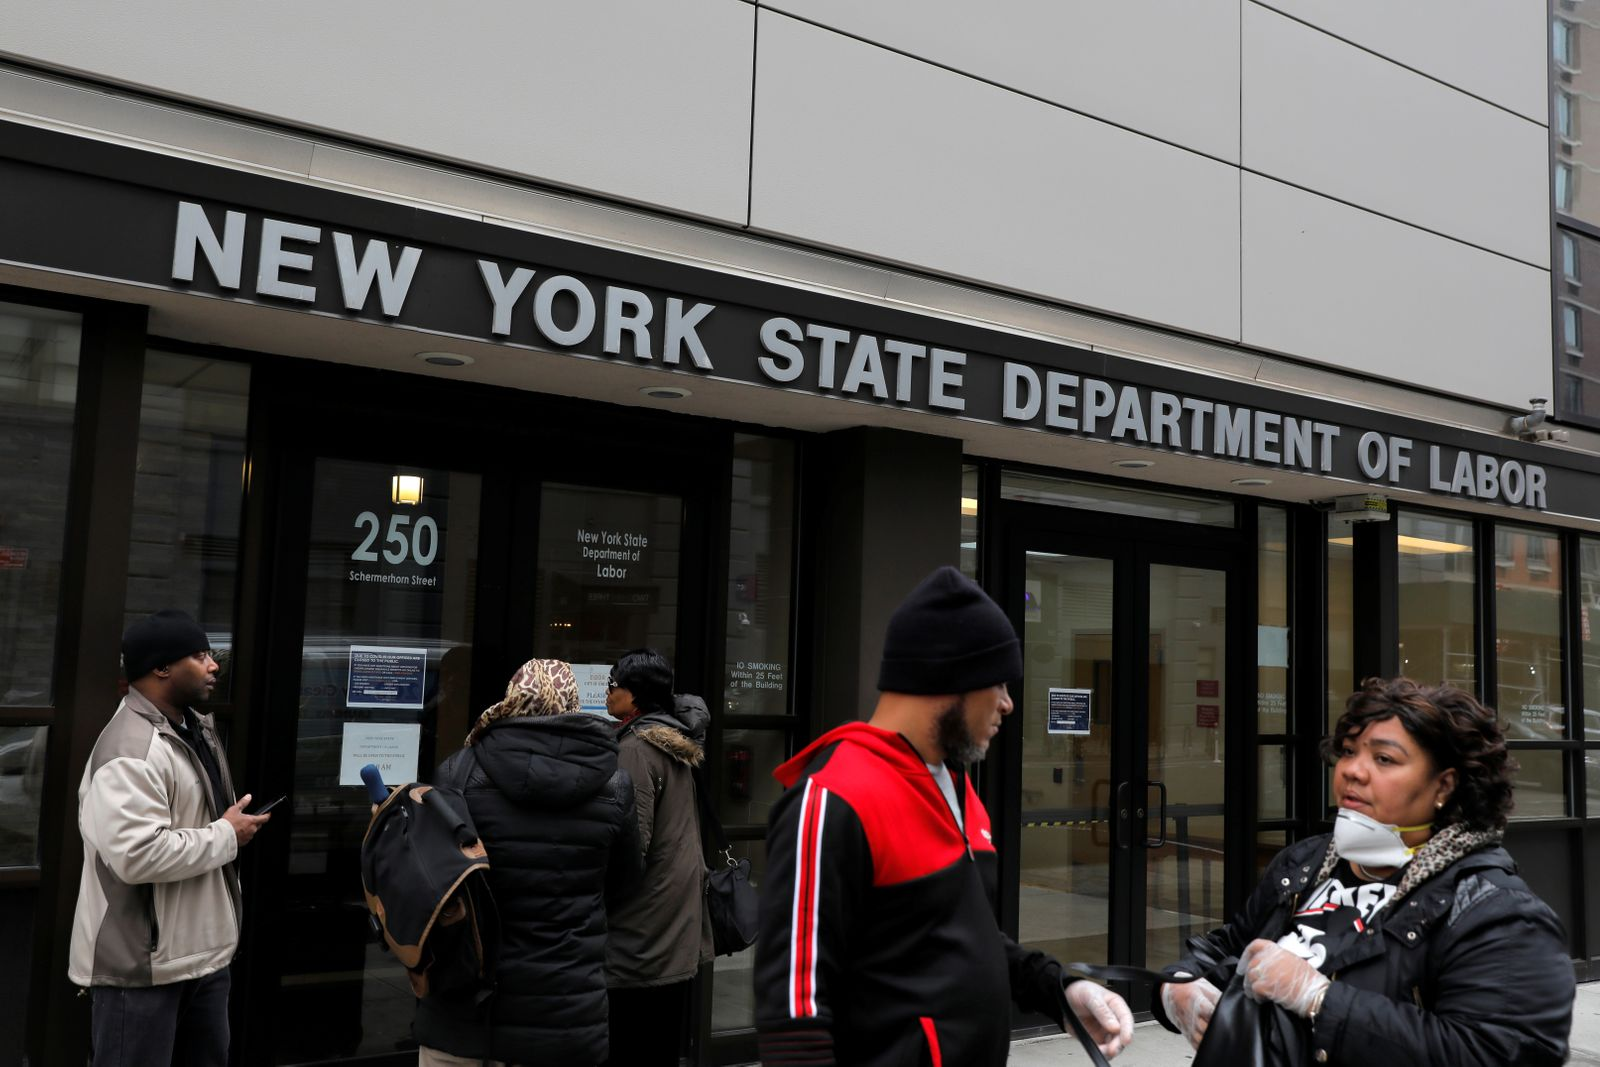 People gather at the entrance for the New York State Department of Labor offices, who closed to the public due to the coronavirus disease (COVID-19) outbreak in the Brooklyn borough of New York City